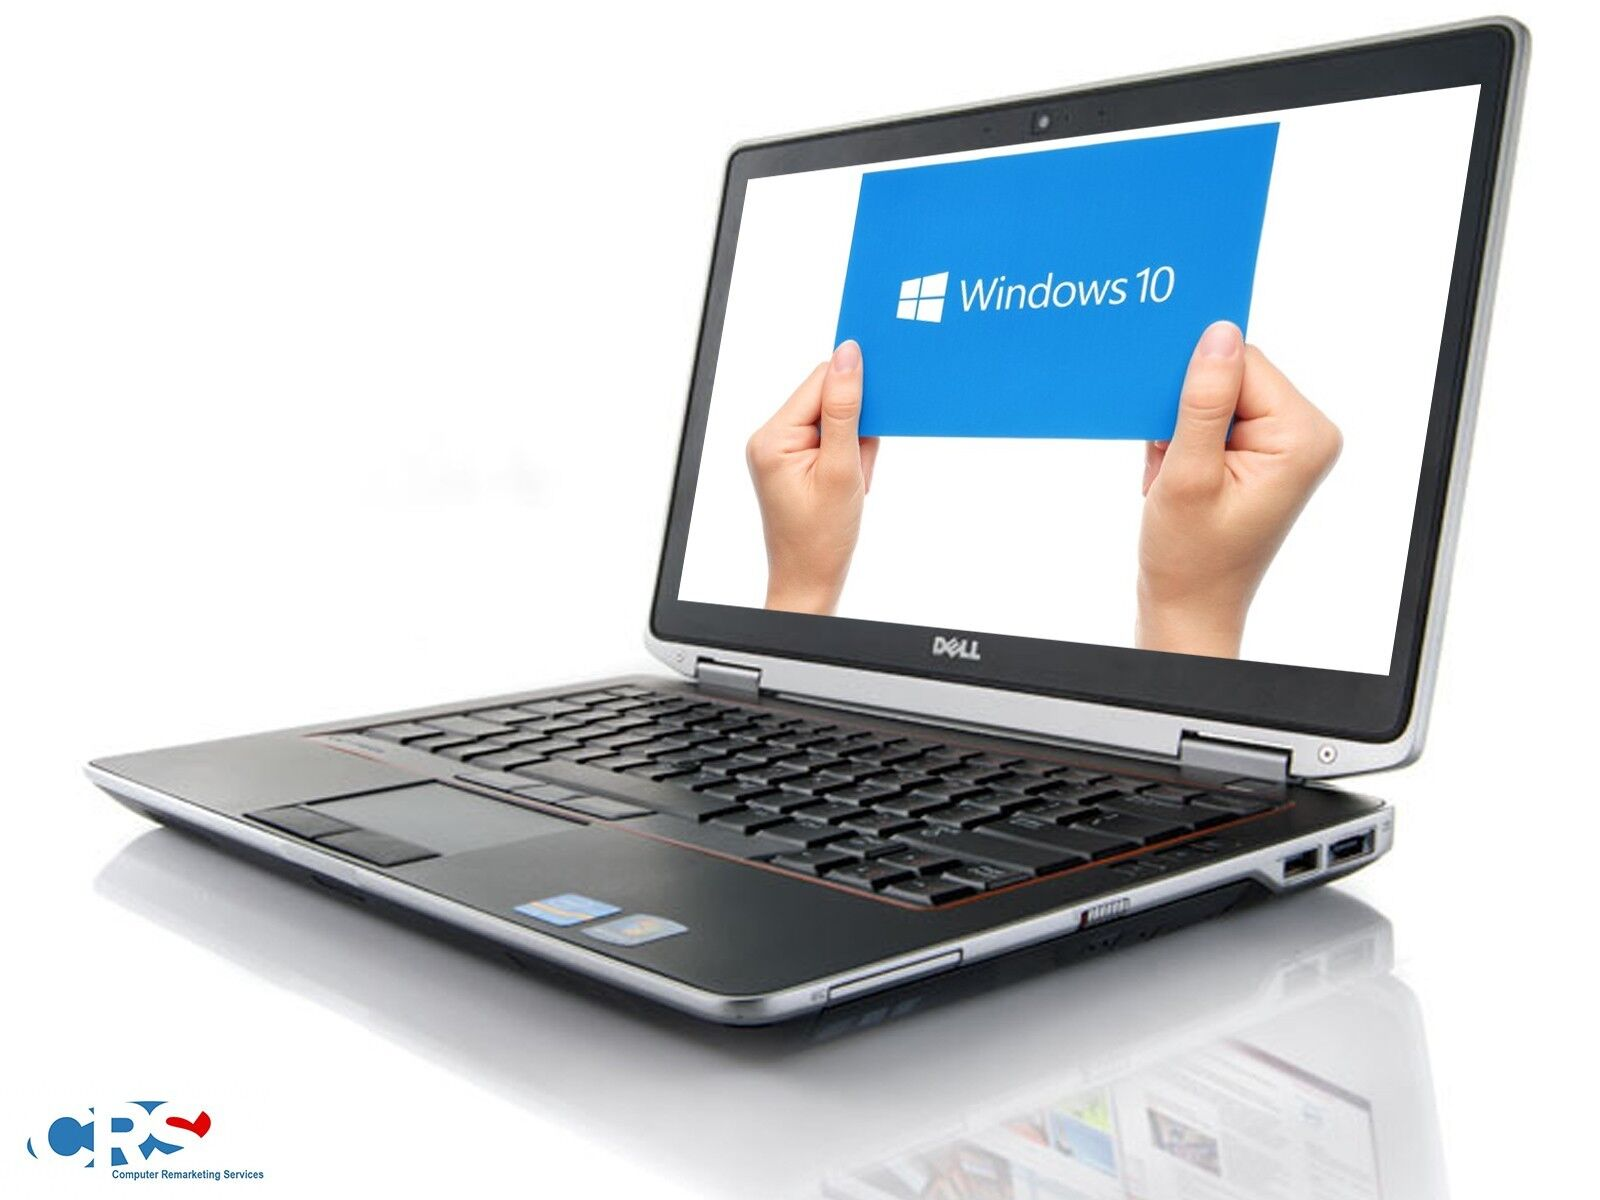 Laptop Windows - Dell Laptop i5 Dual Core 2.6GHz 320GB HDD 4GB hdmi Computer Windows 10 64bit